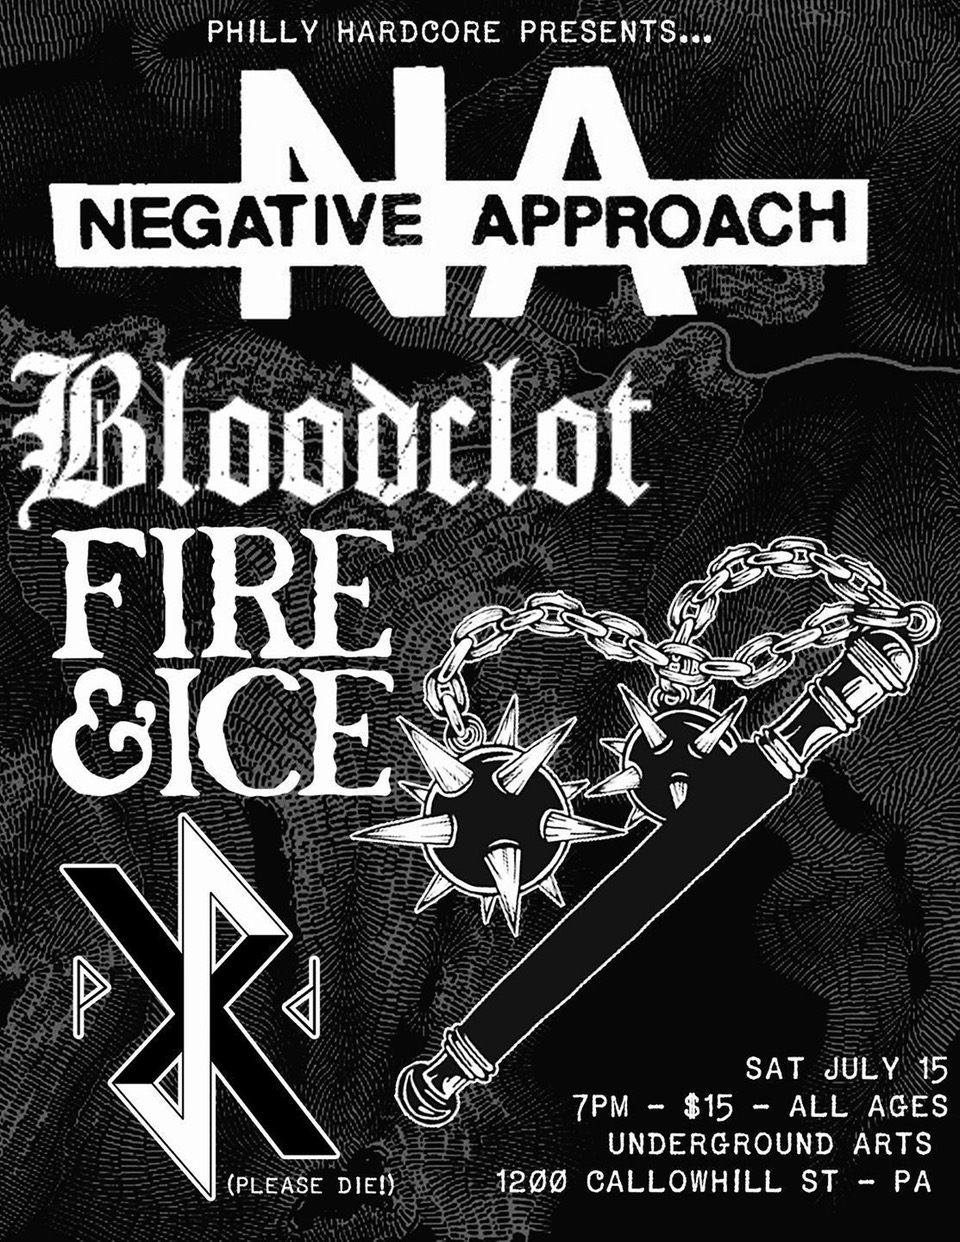 Negative Approach US tour